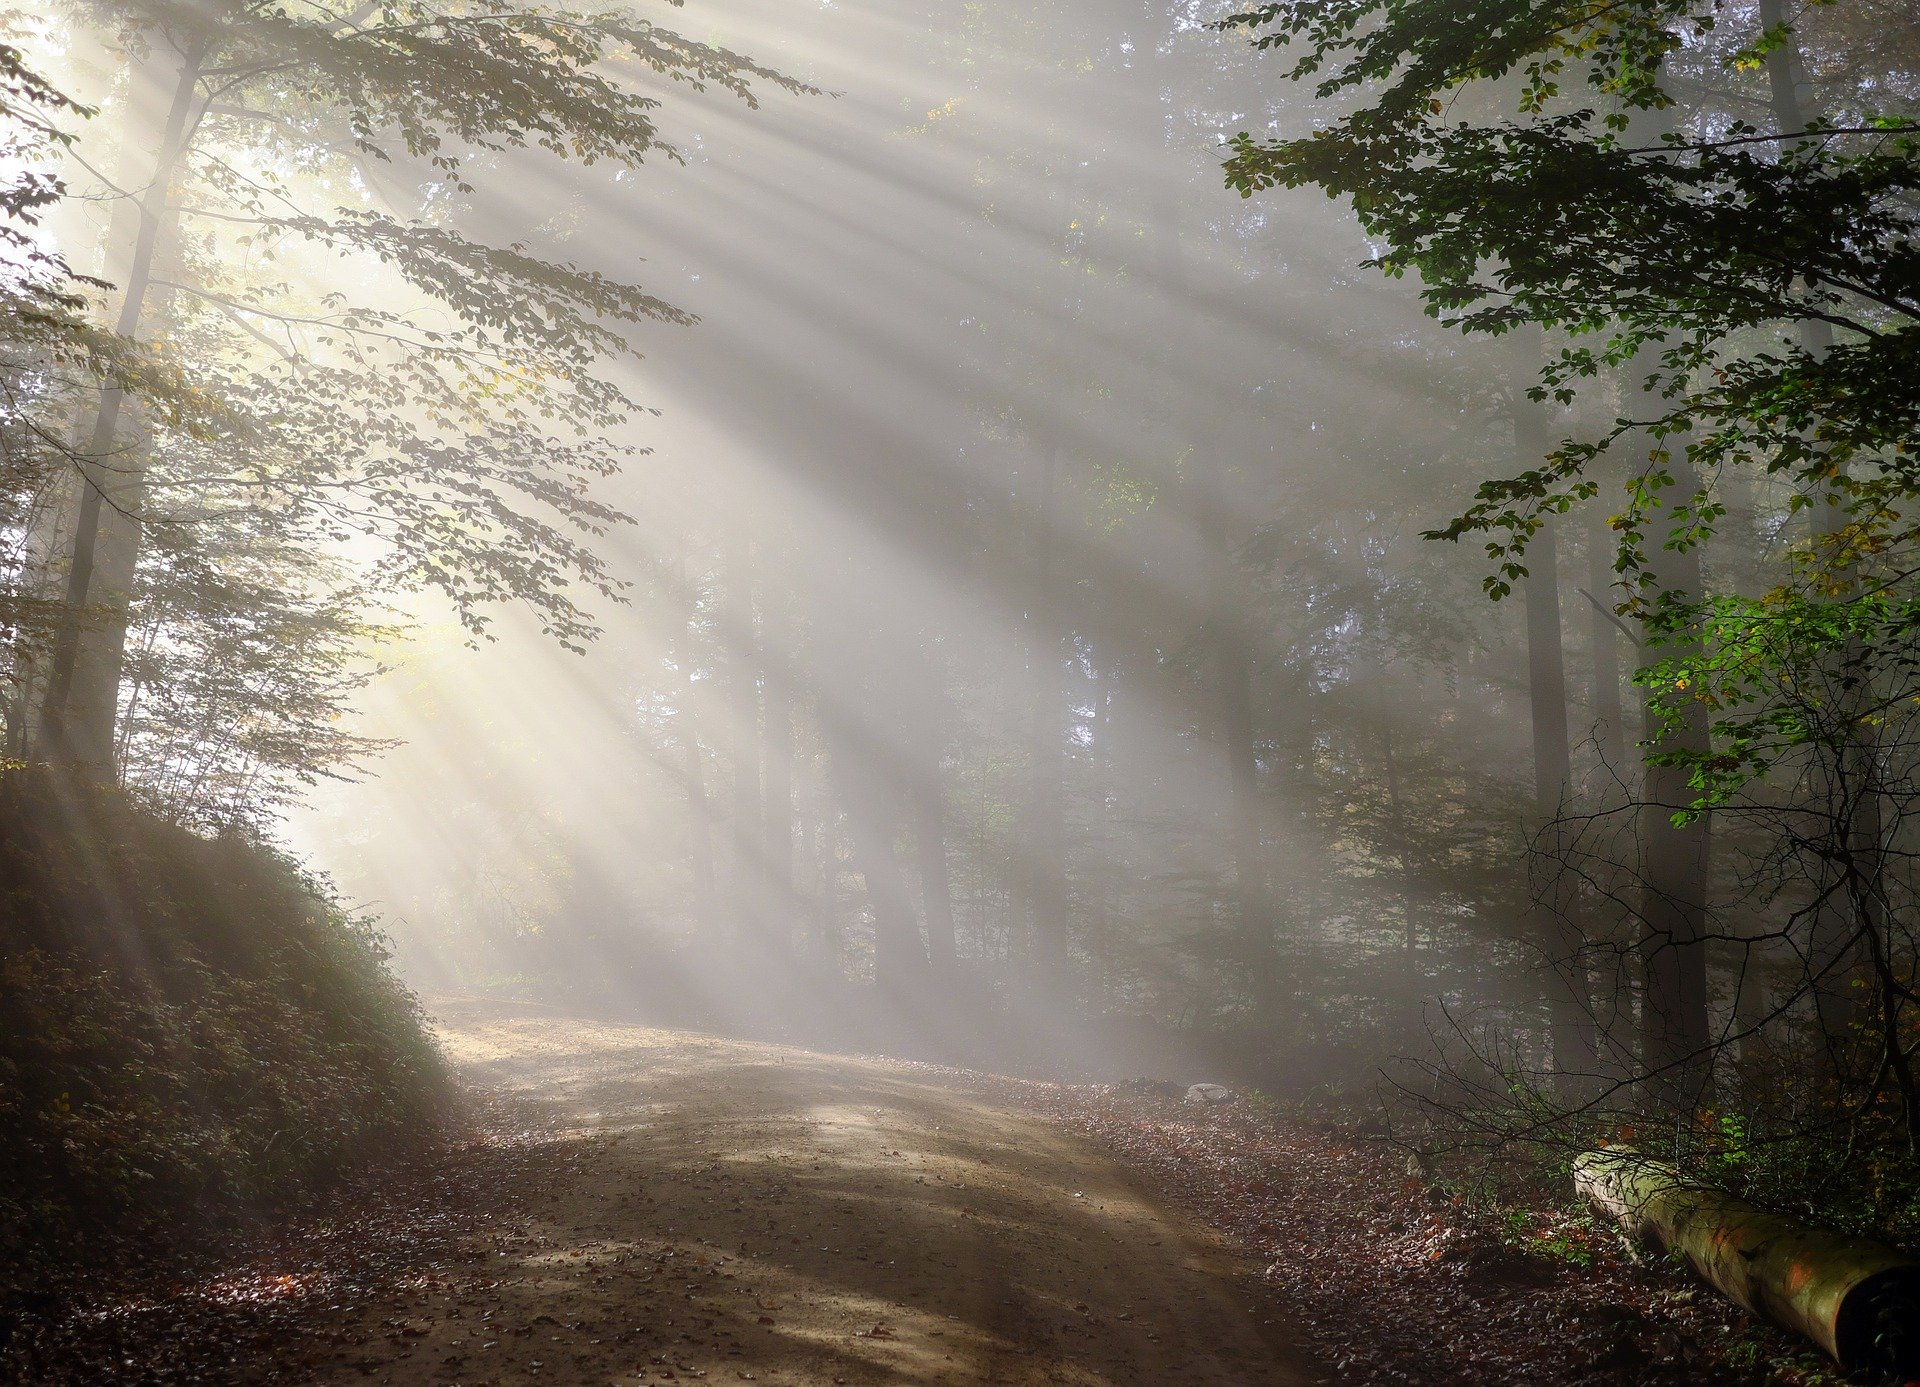 Morning in the woods. Path in boreal forest with sun emerging through fog around the corner as path bends to the left.